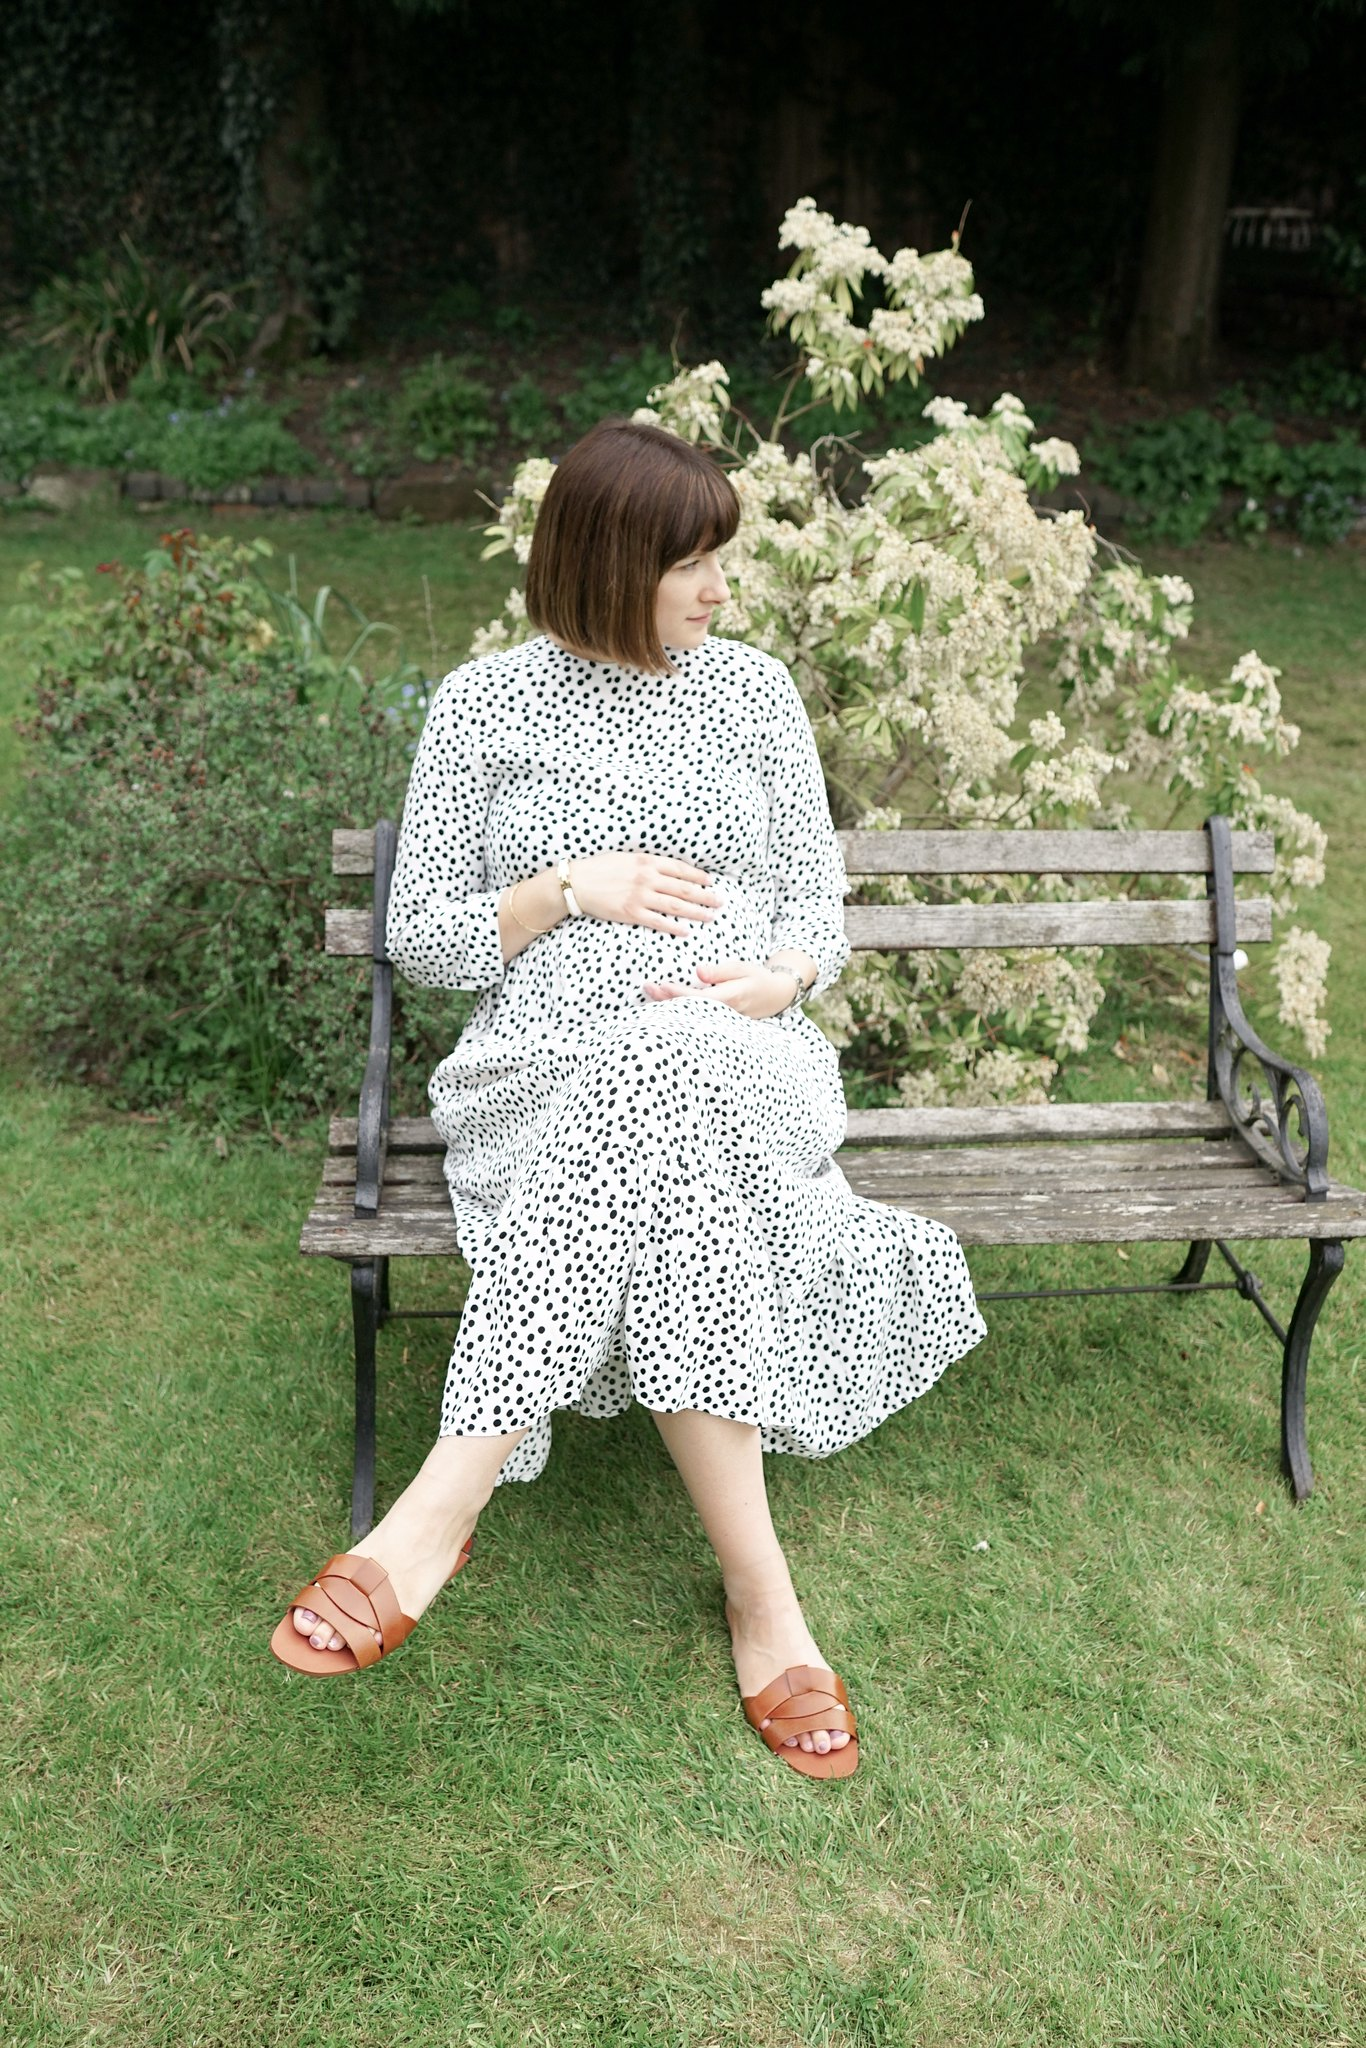 zara, Second trimester, baby number 2, pregnancy style, maternity fashion, mom life, mom blogger, parenthood, motherhood blog, bump friendly fashion, 28 weeks pregnant,